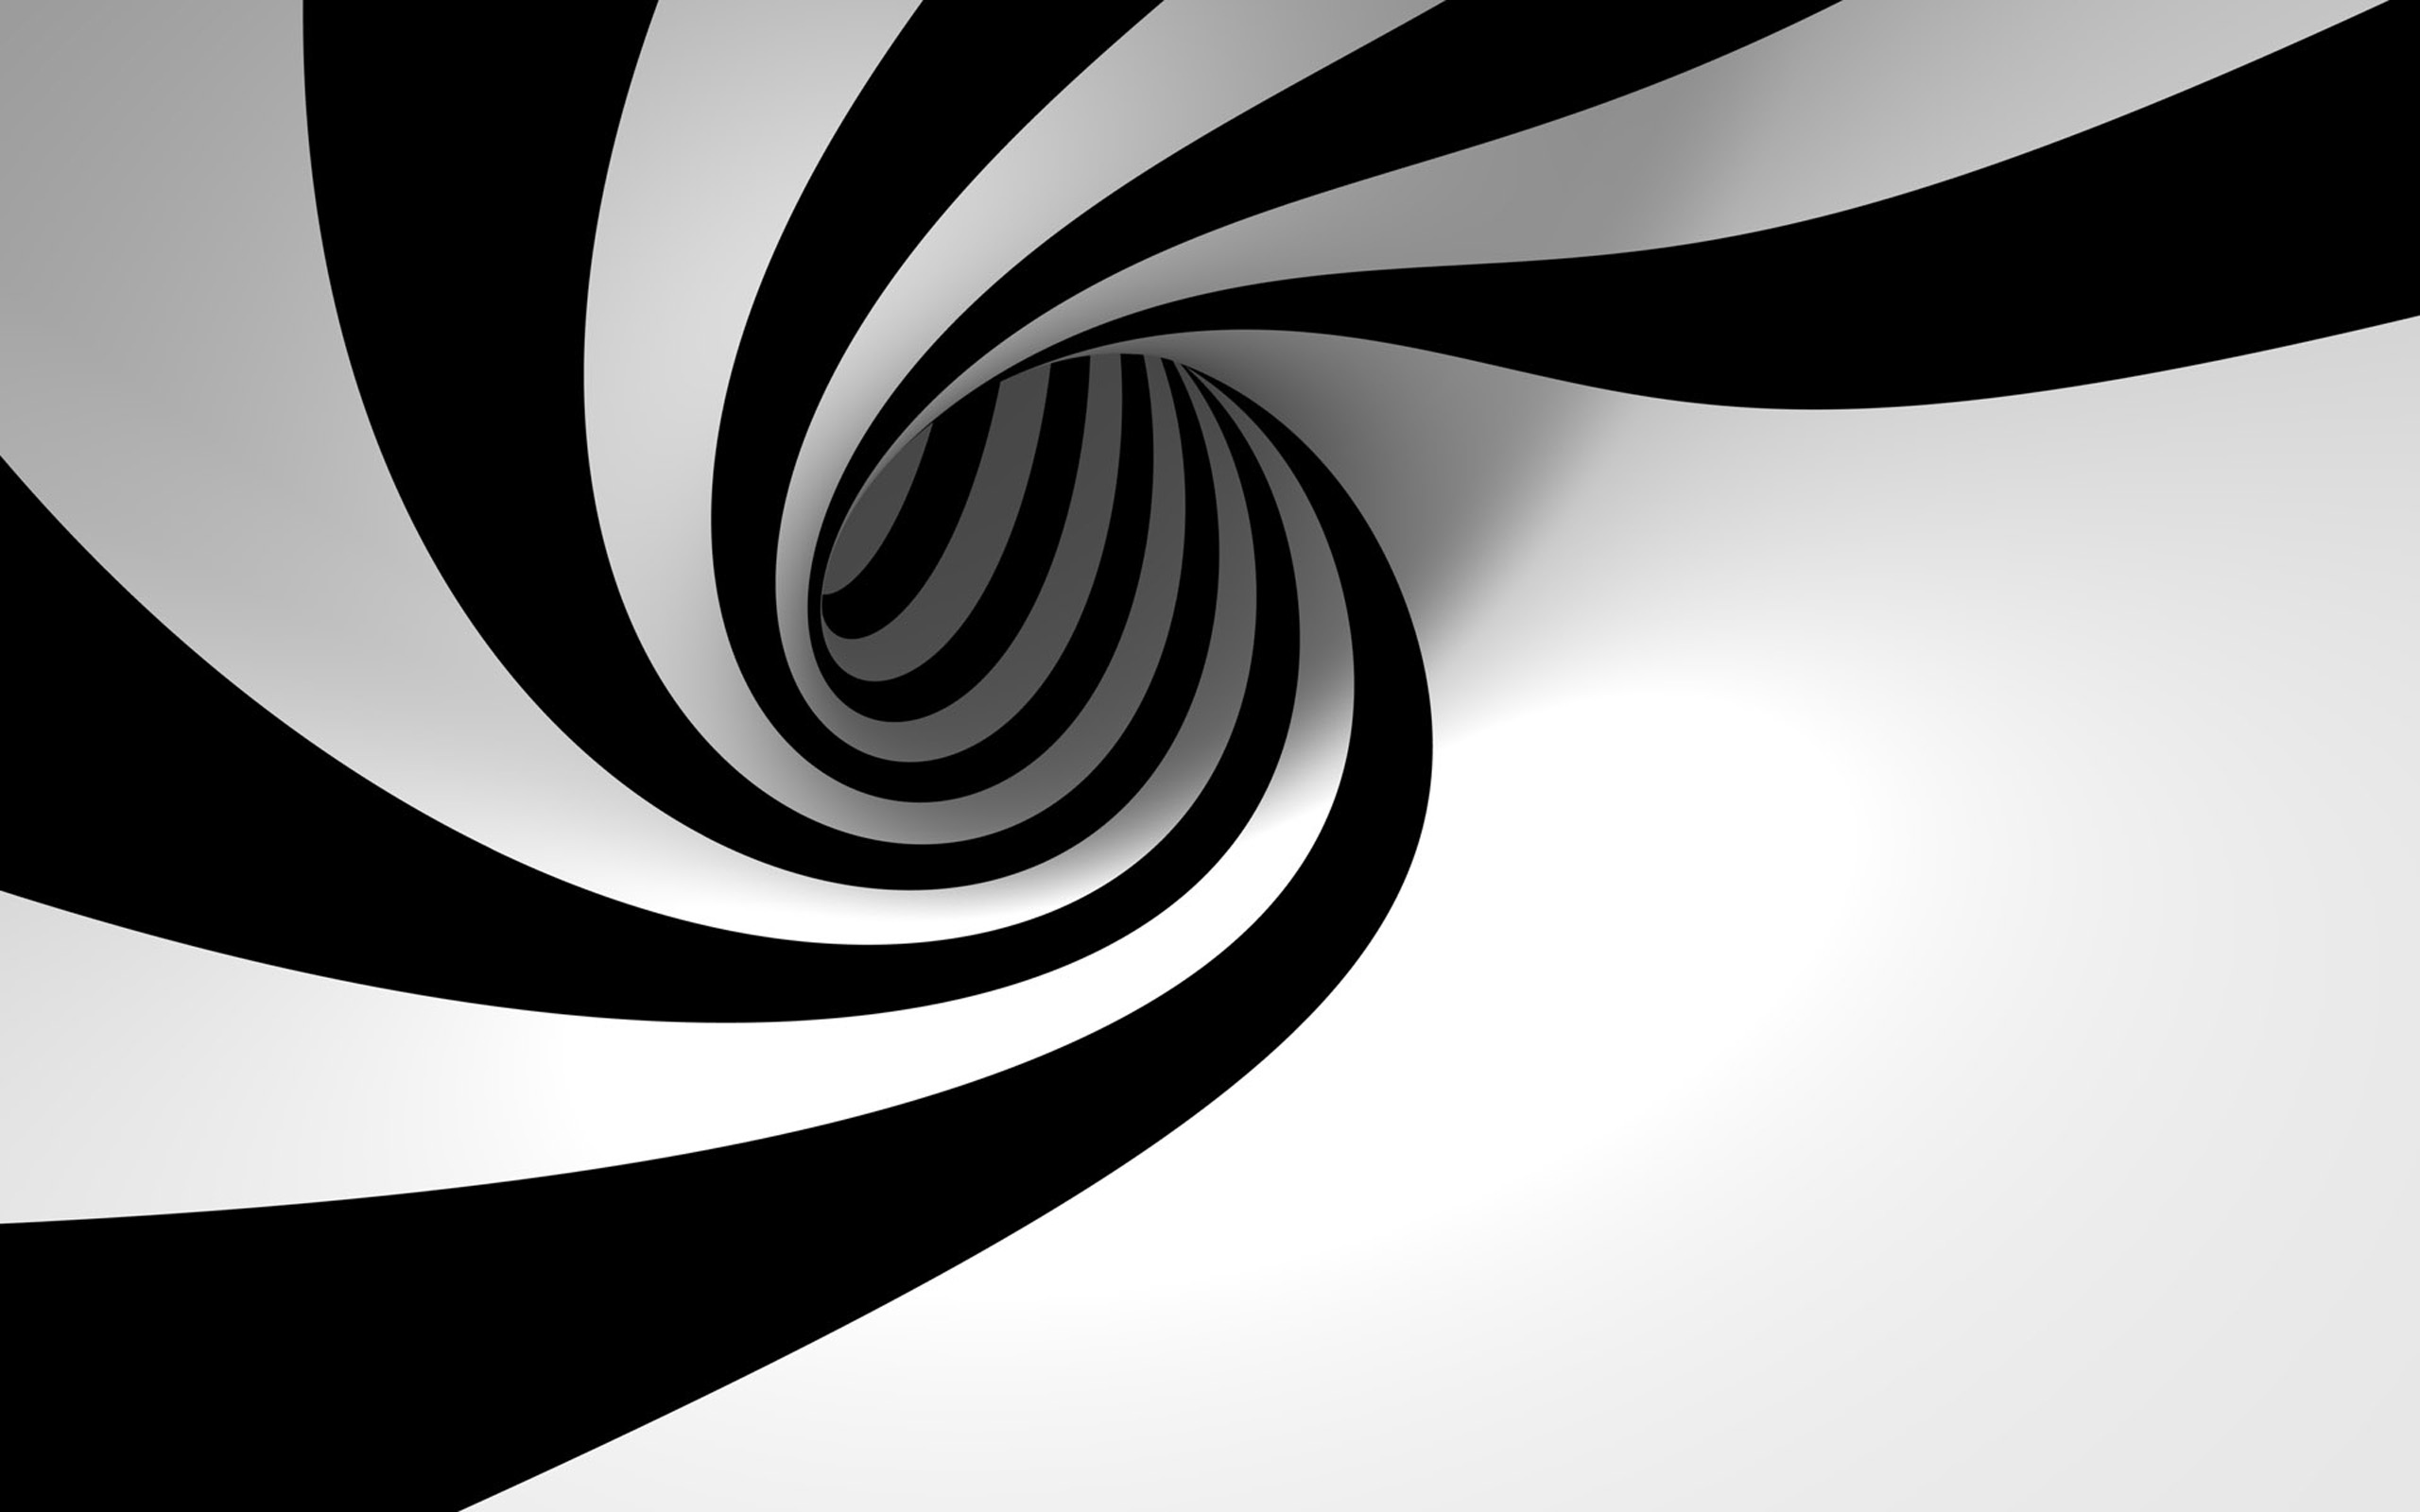 Black And White Backgrounds 3351 Hd Wallpapers in Abstract   Imagesci 2560x1600